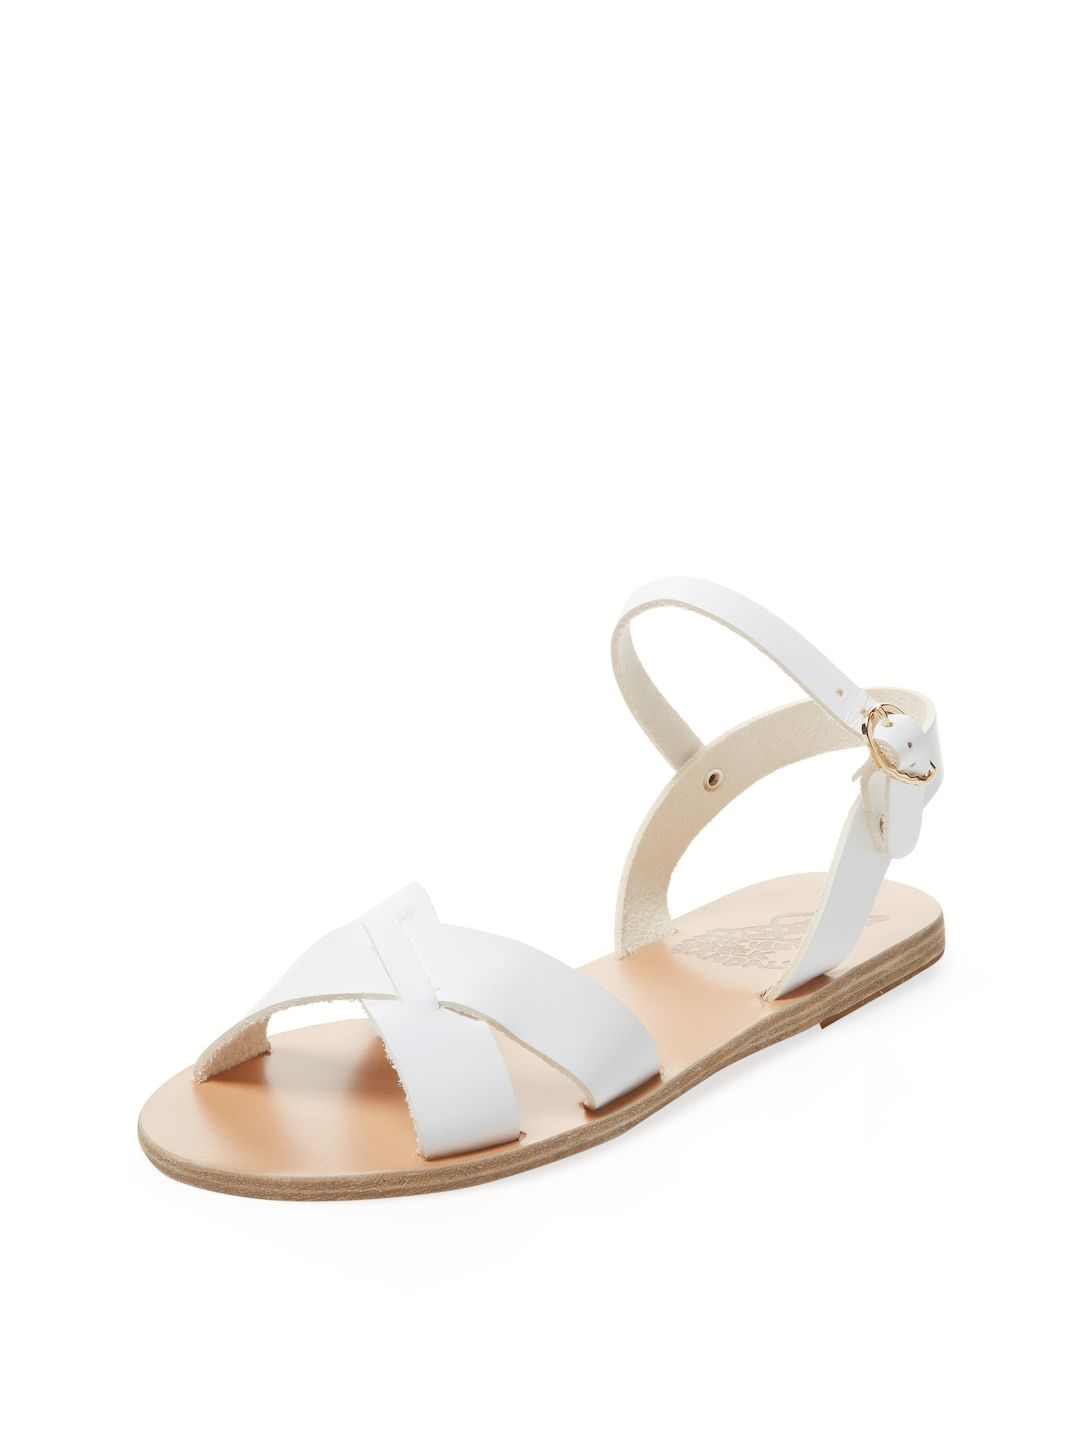 3d04df874 ANCIENT GREEK SANDALS WOMEN S EVDOKIA SANDAL - WHITE